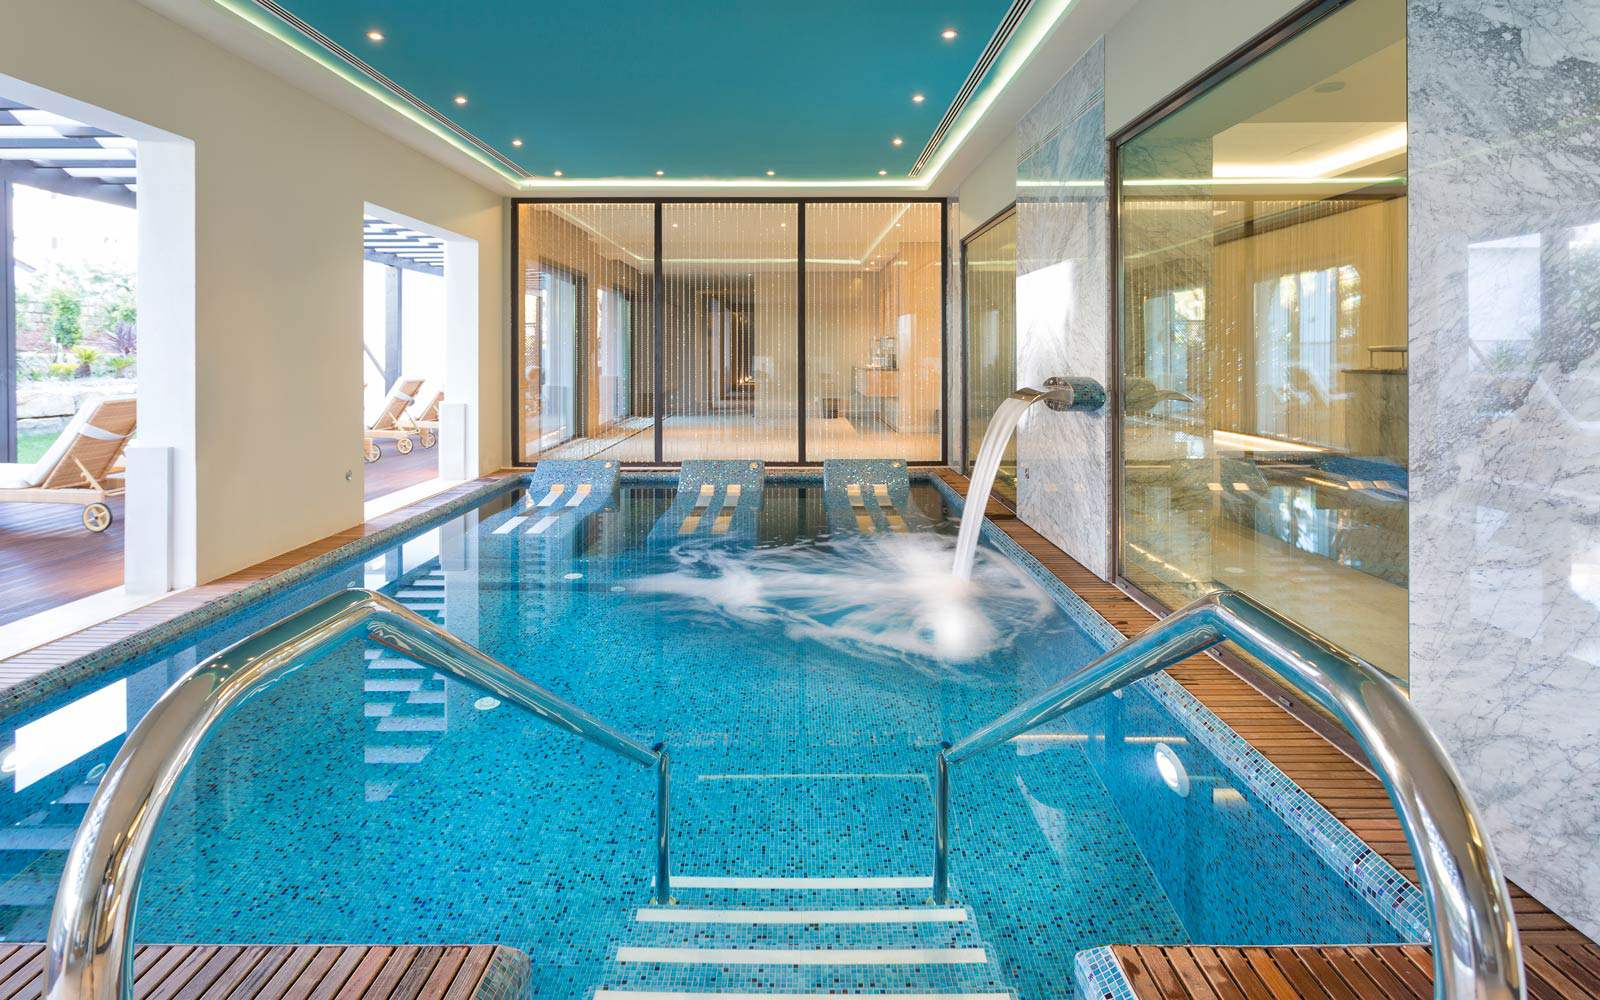 Pine Cliffs - Serenity Spa indoor pool